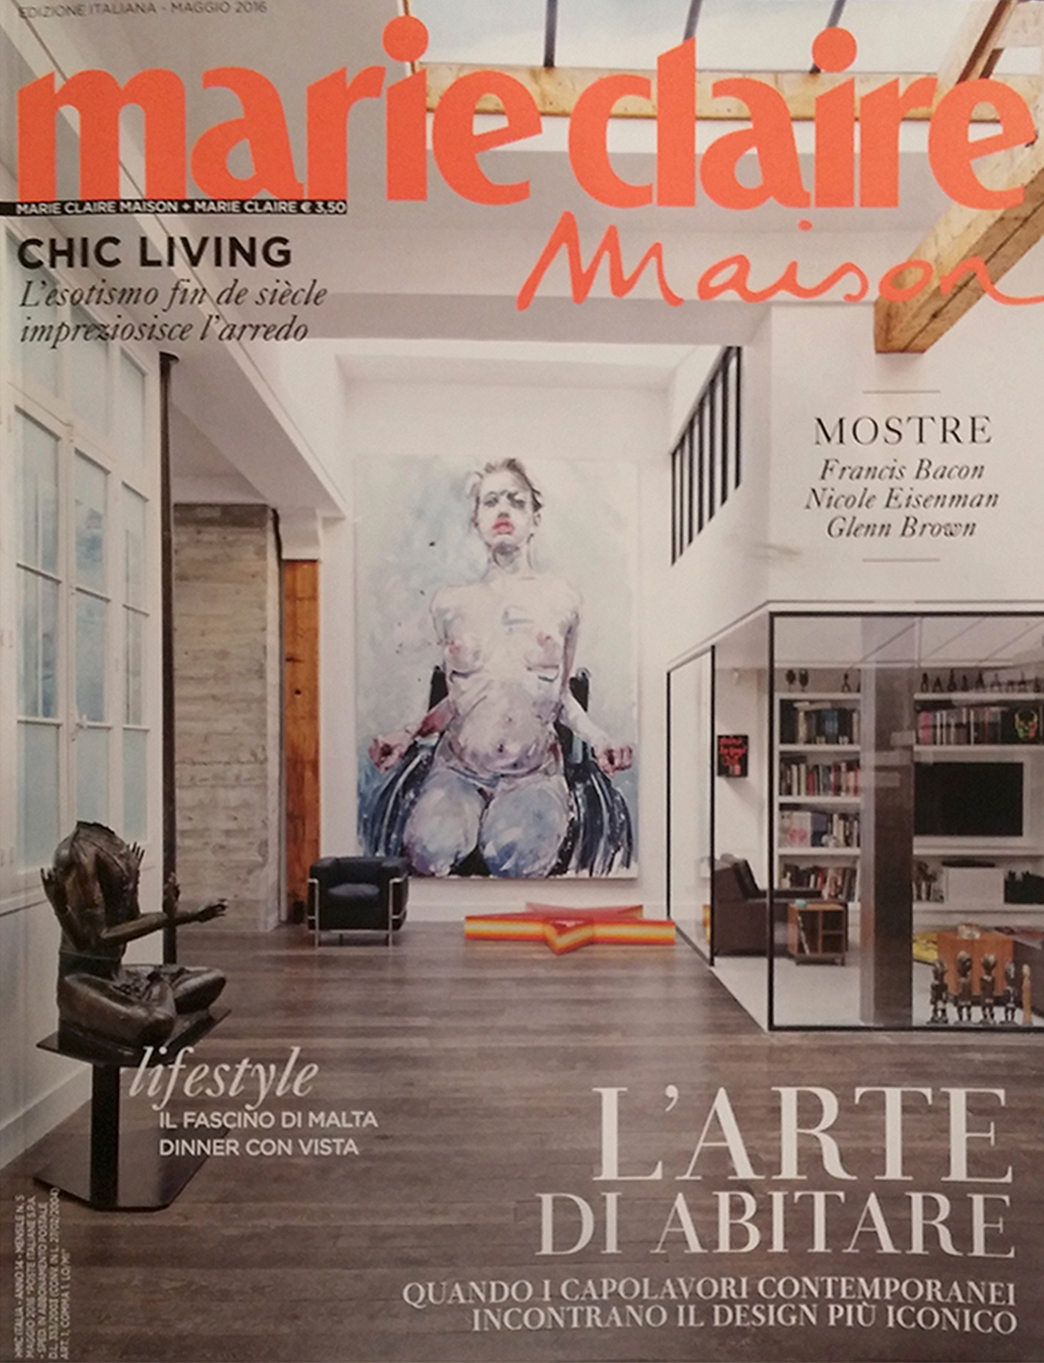 marie caire_web_cover.jpg